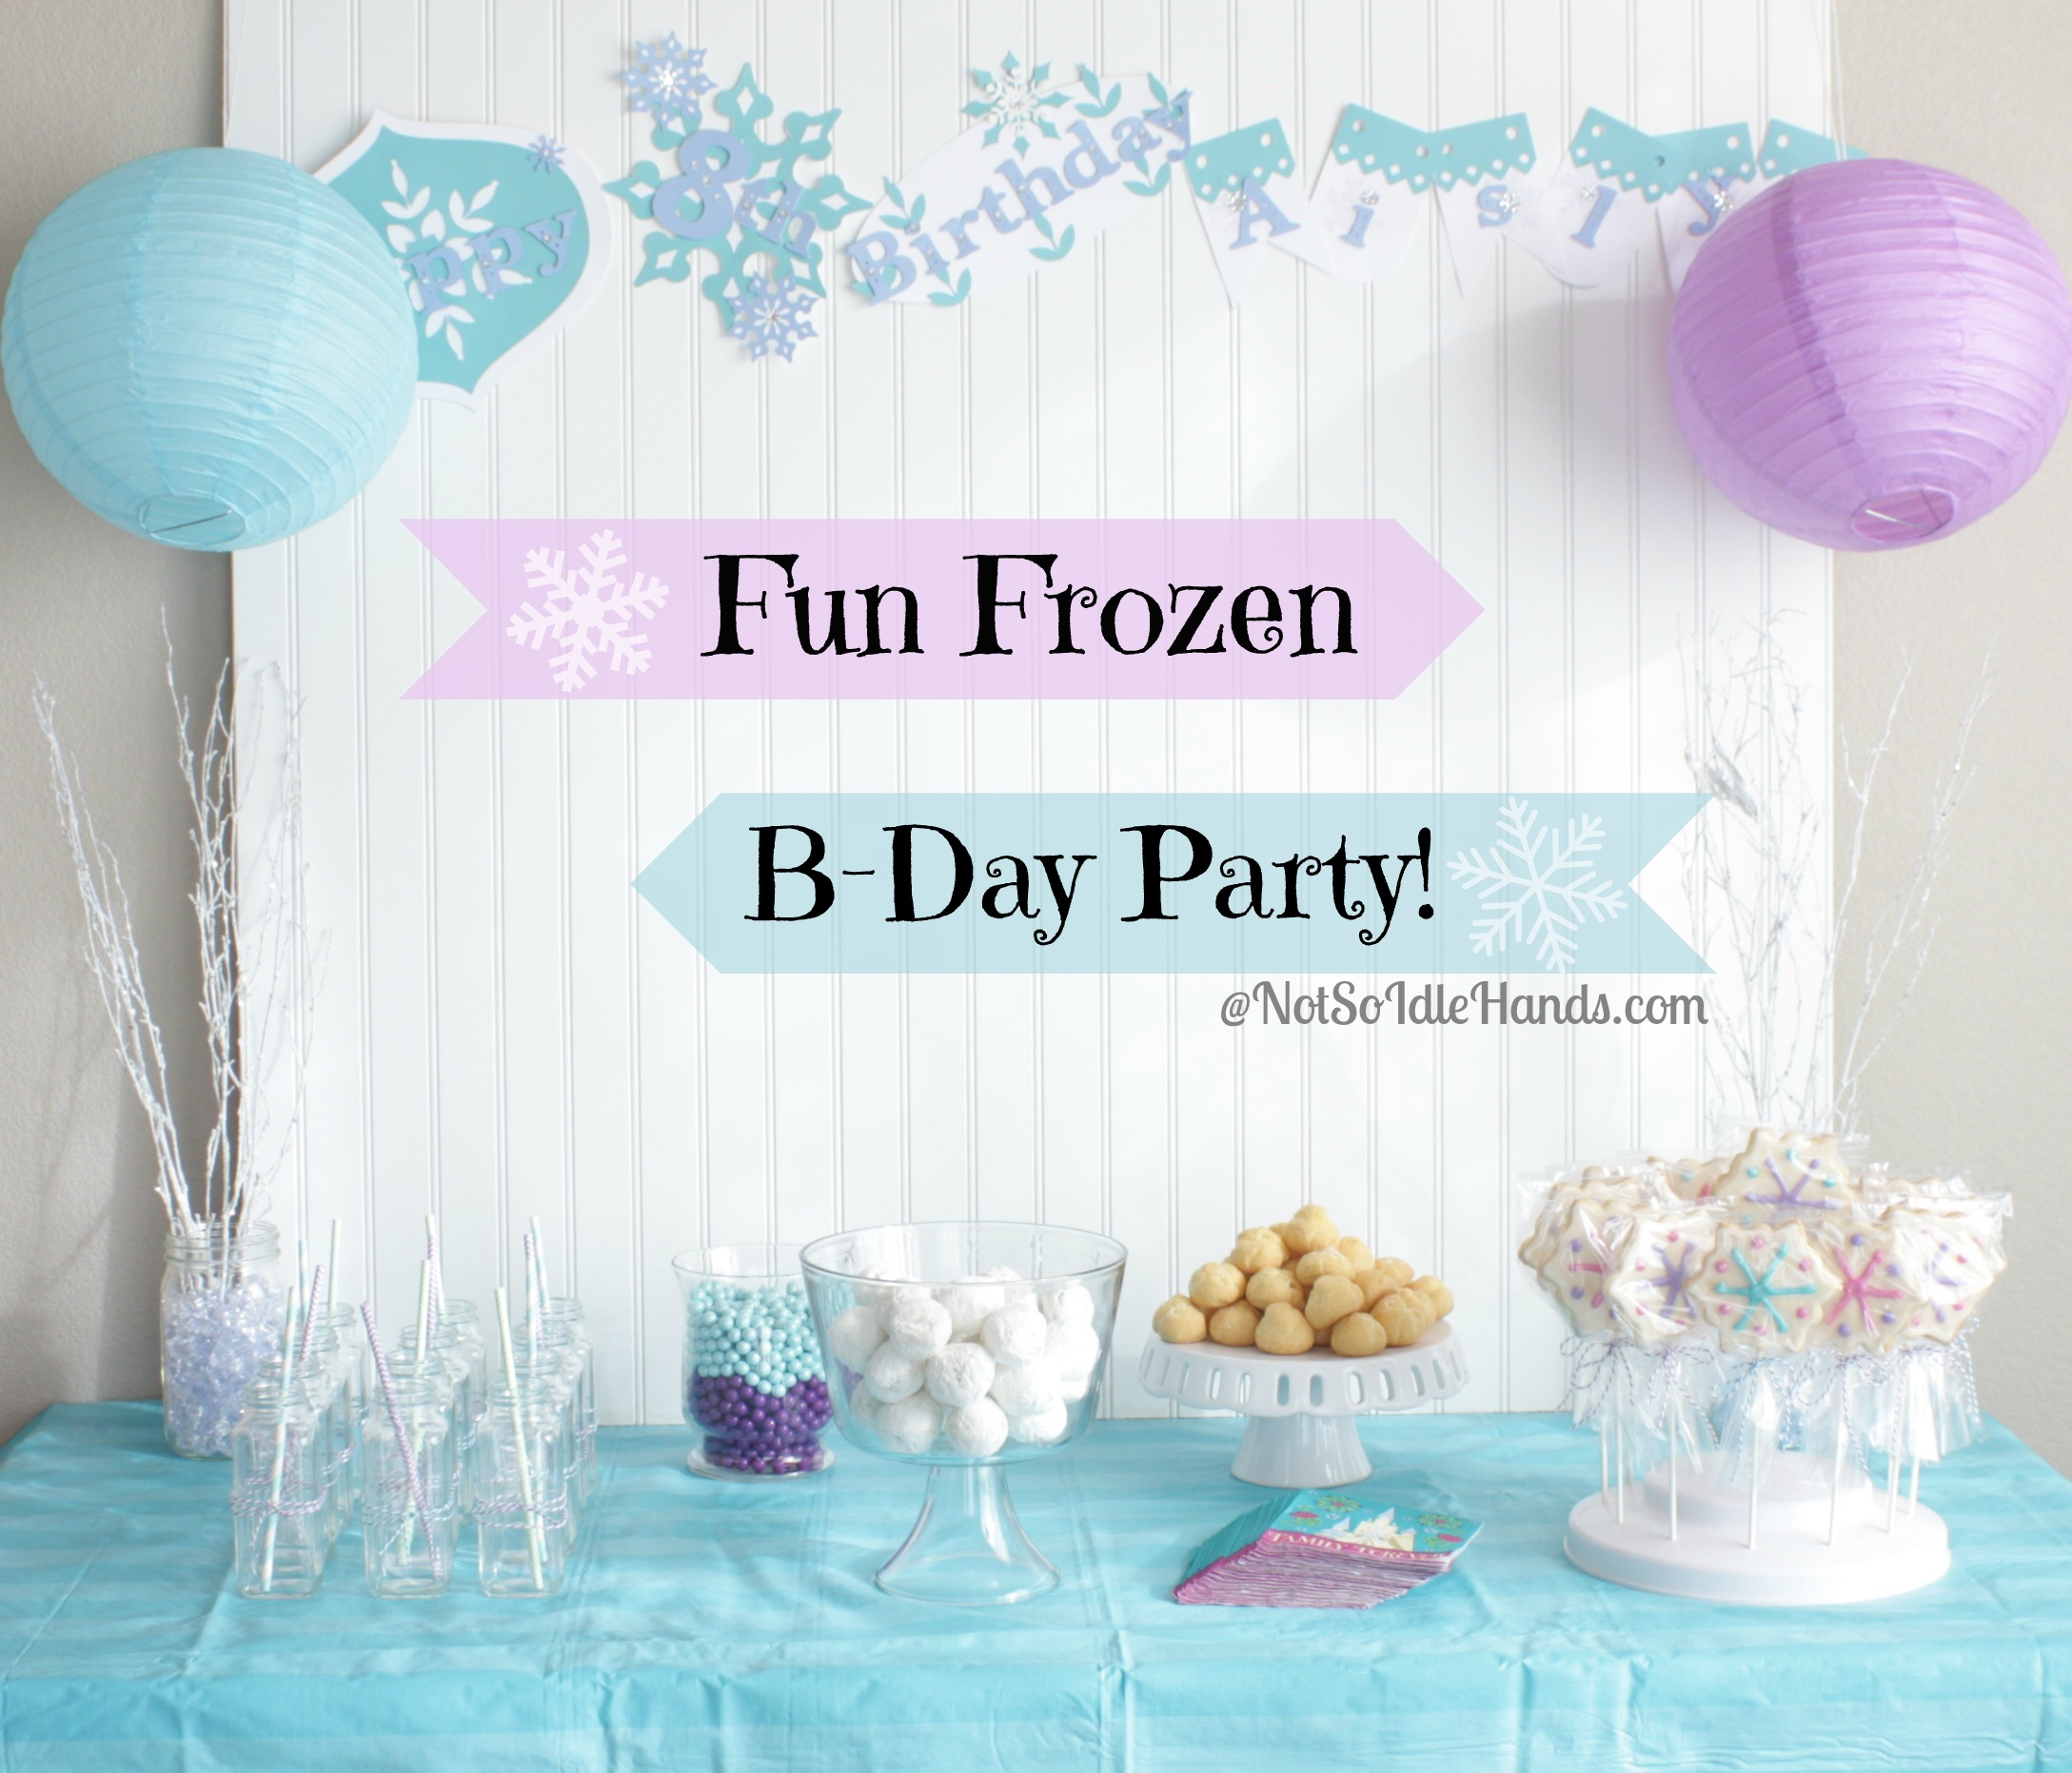 3 year old birthday party themes girl ; frozen-party-3